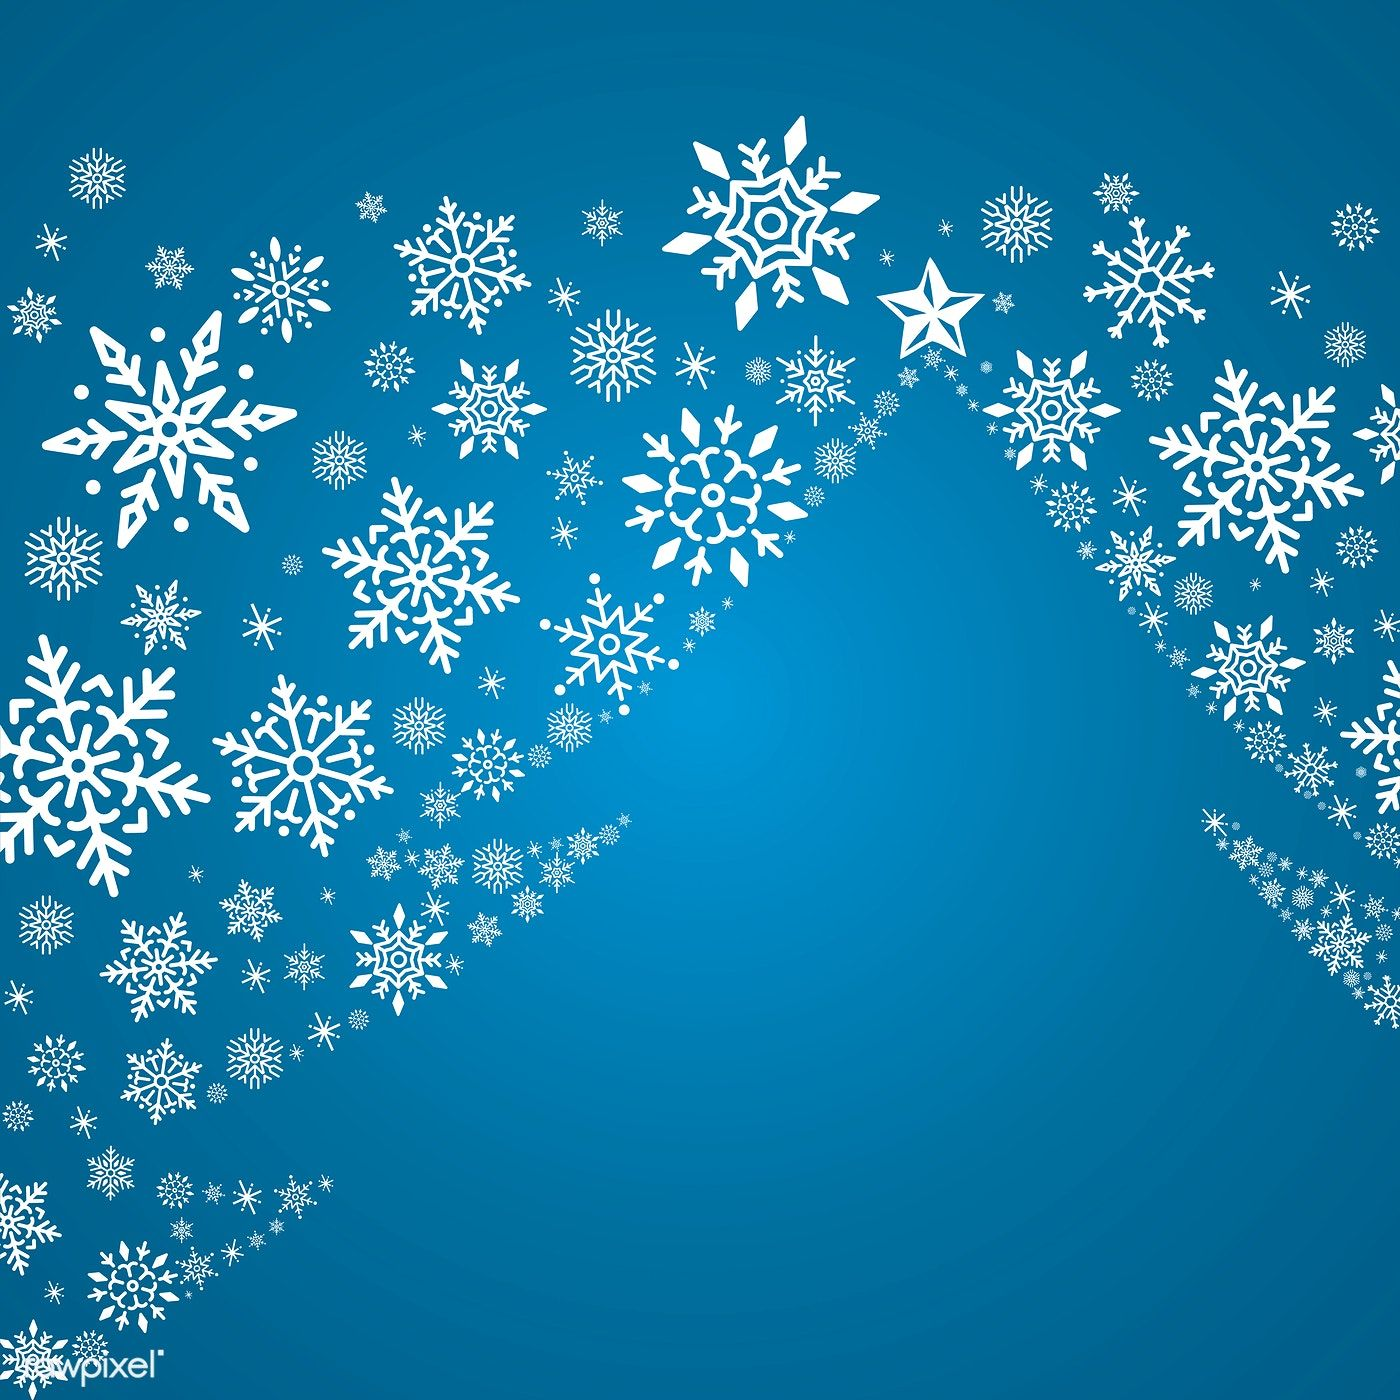 Blue Christmas Winter Holiday Background With Snowflake And Christmas Tree Vector Free Image By R Christmas Tree Background Holiday Background Blue Christmas